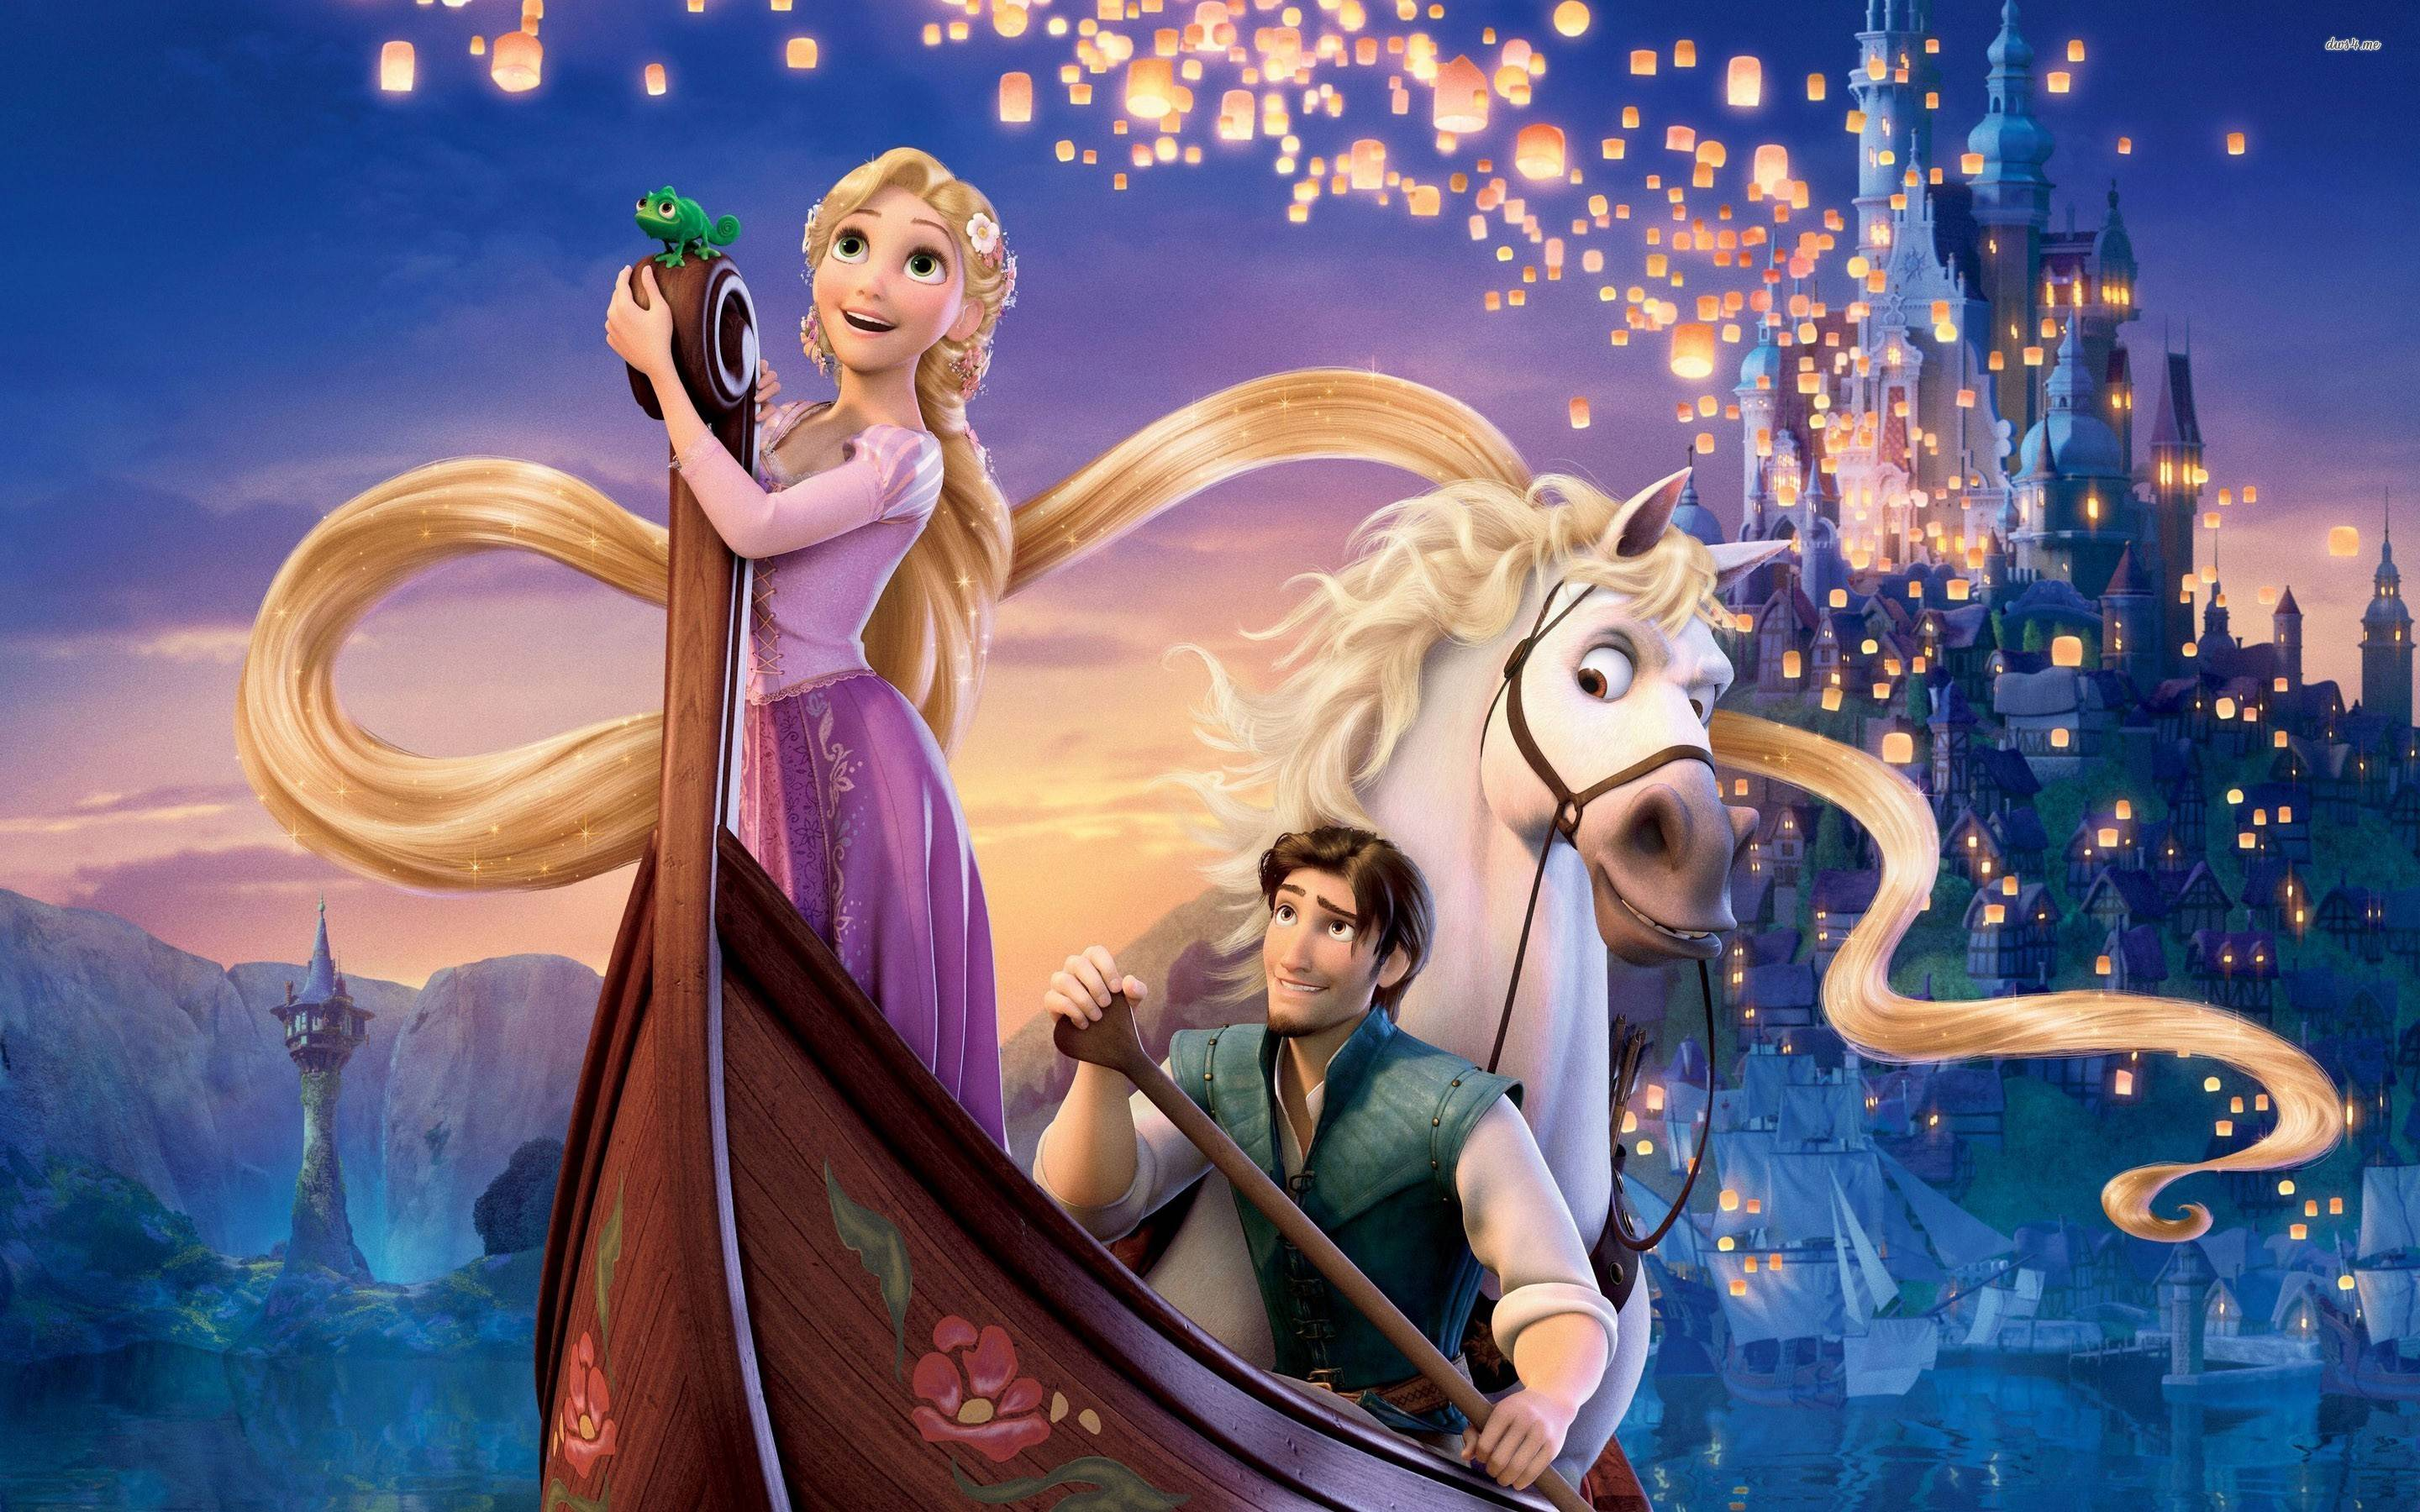 cartoon Love Story Hd Love Wallpaper : Rapunzel Wallpapers - Wallpaper cave